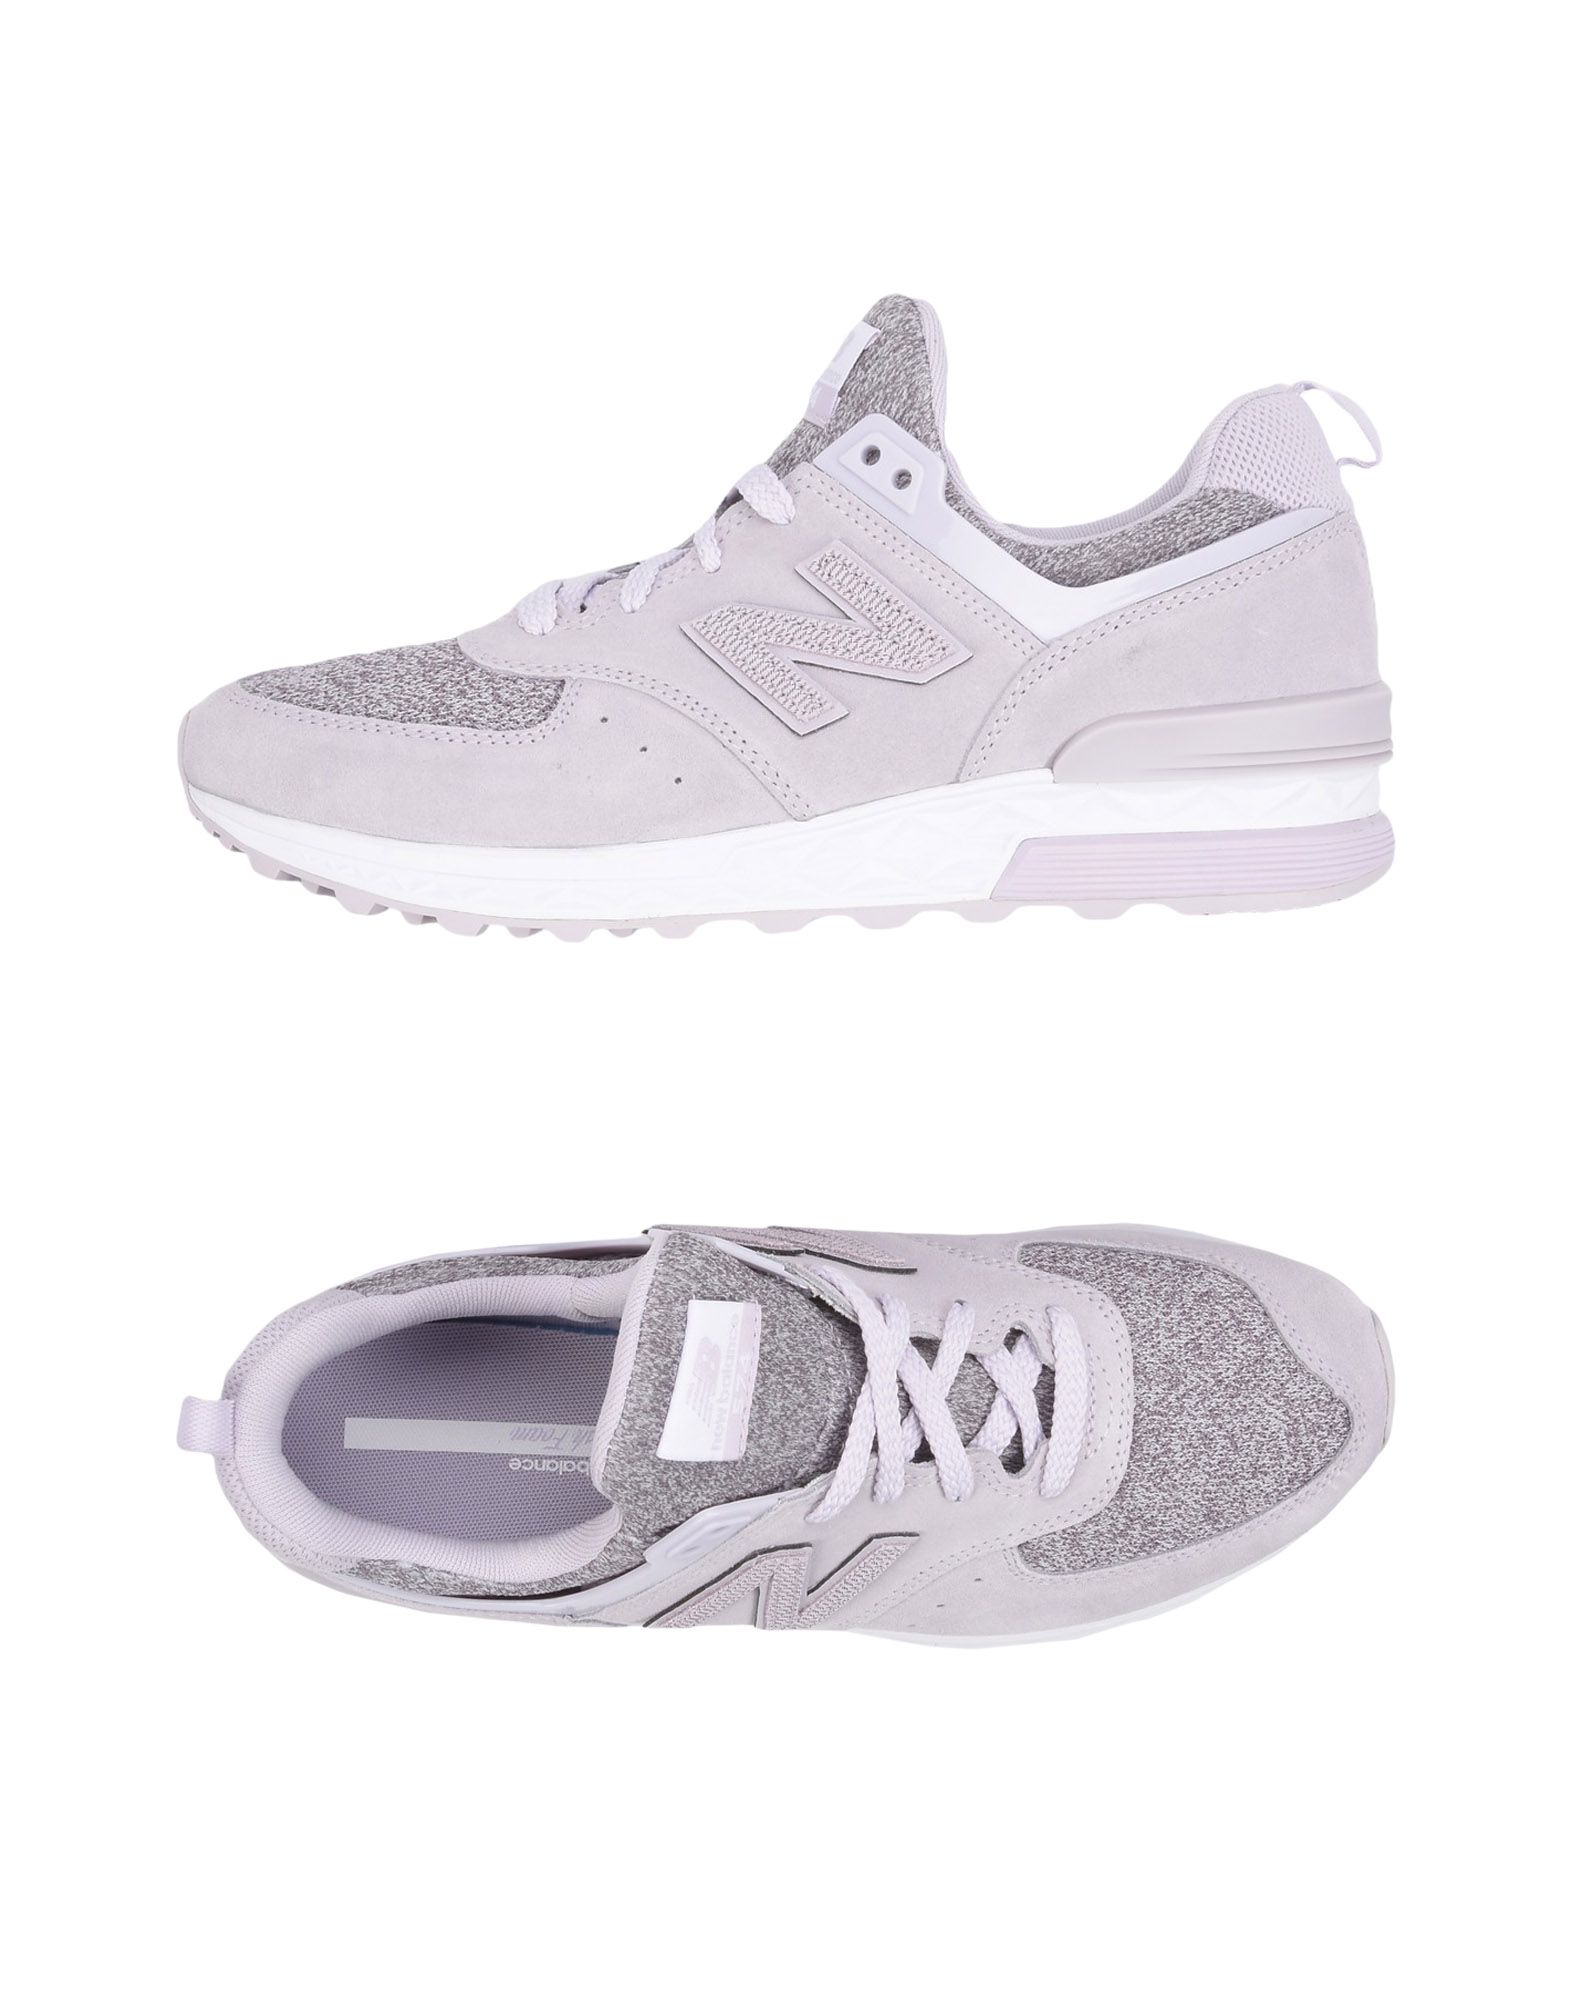 Sneakers New Balance 574 Sport - Femme - Sneakers New Balance sur